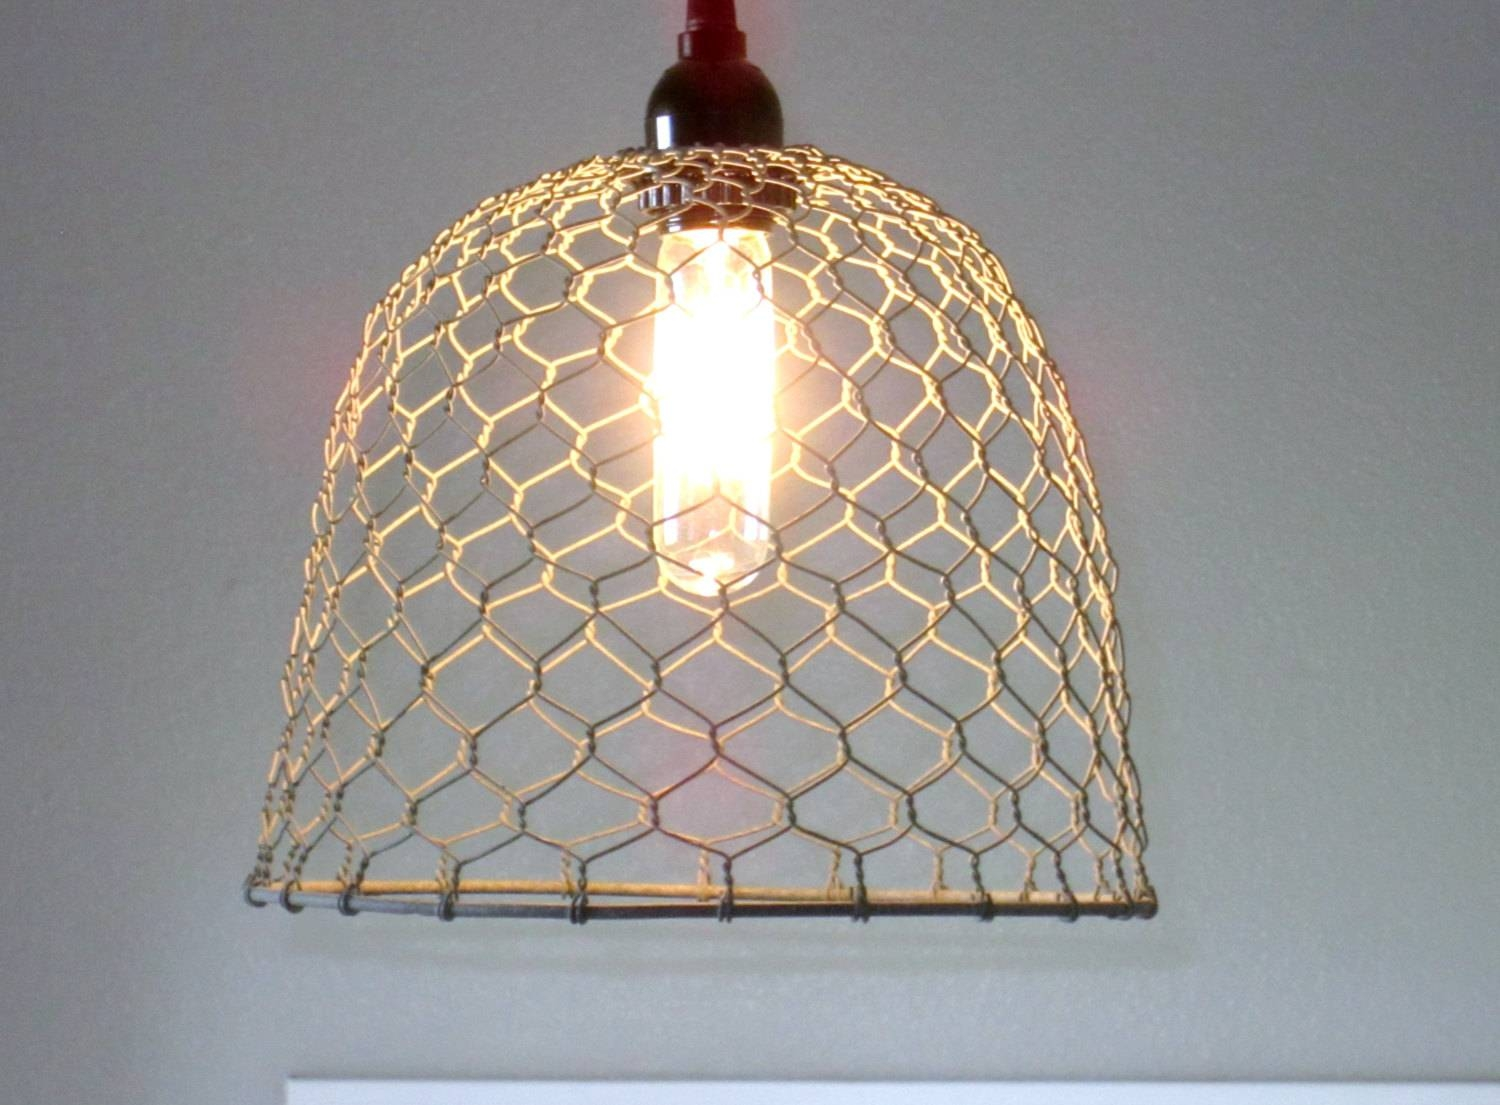 Rustic Pendant Lighting-Chicken Wire Farmhouse Pendant with regard to Chicken Wire Pendant Lights (Image 13 of 15)